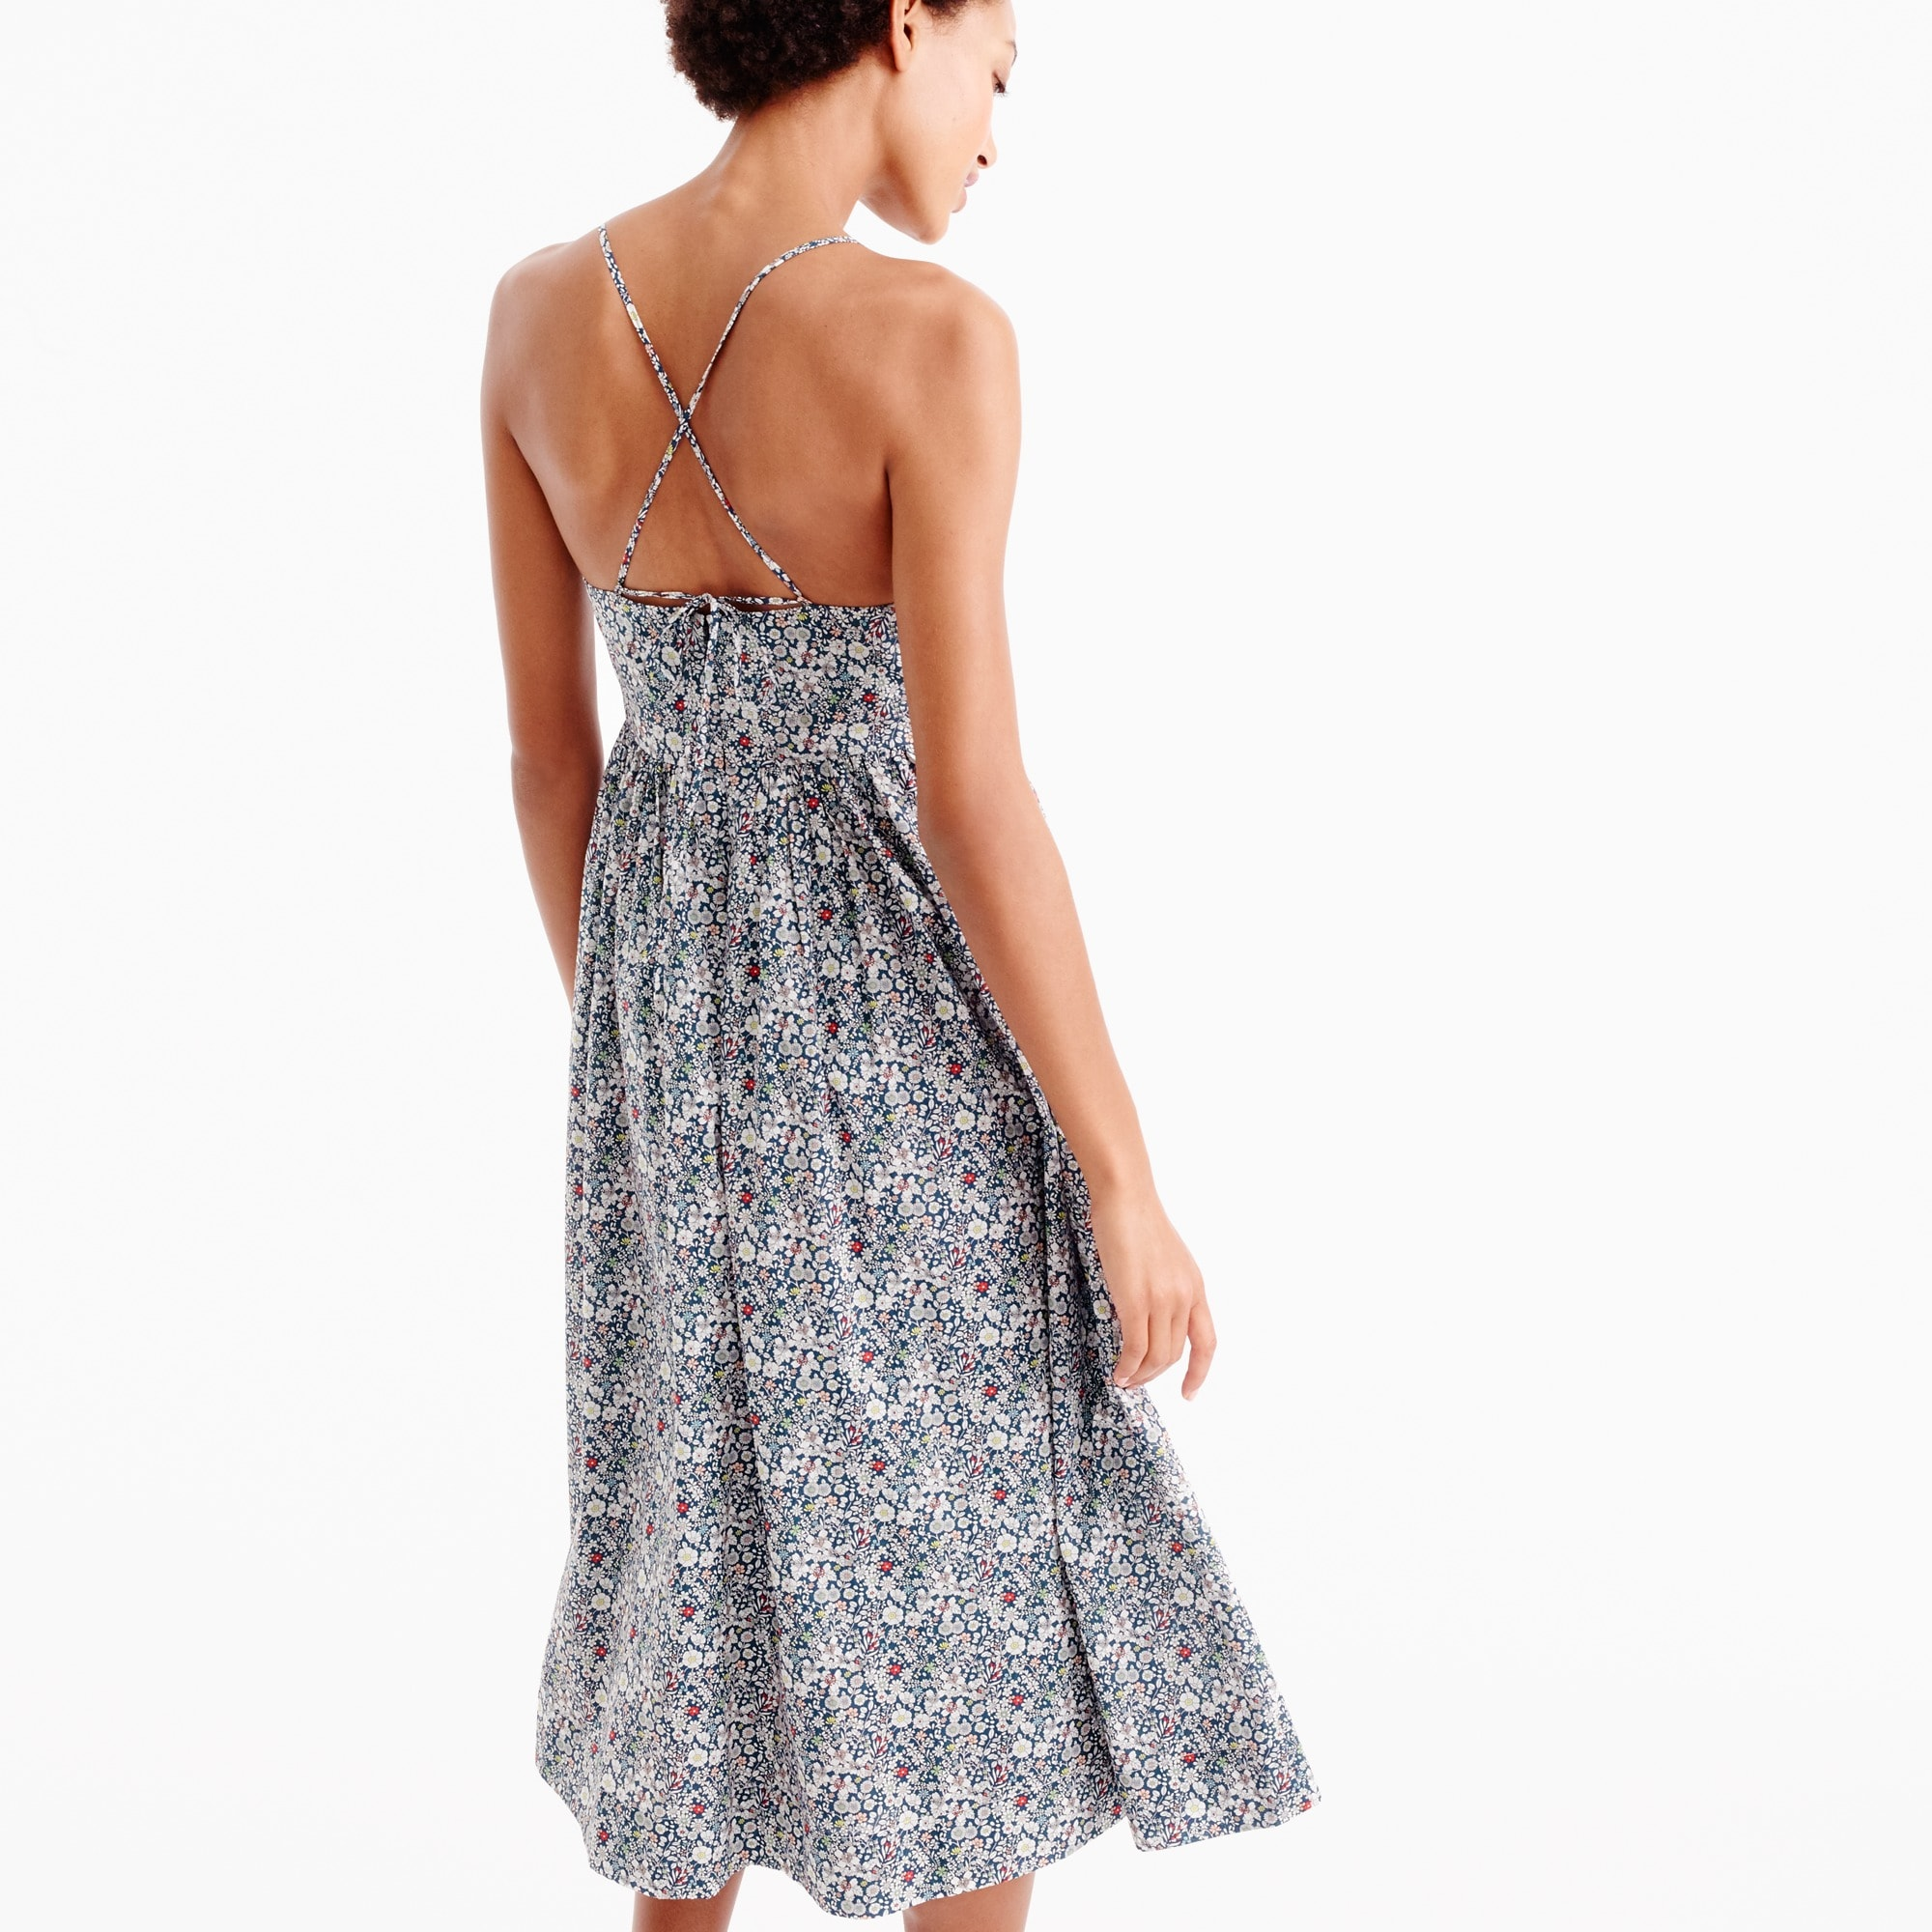 Spaghetti-strap dress in Liberty® June's Meadow floral